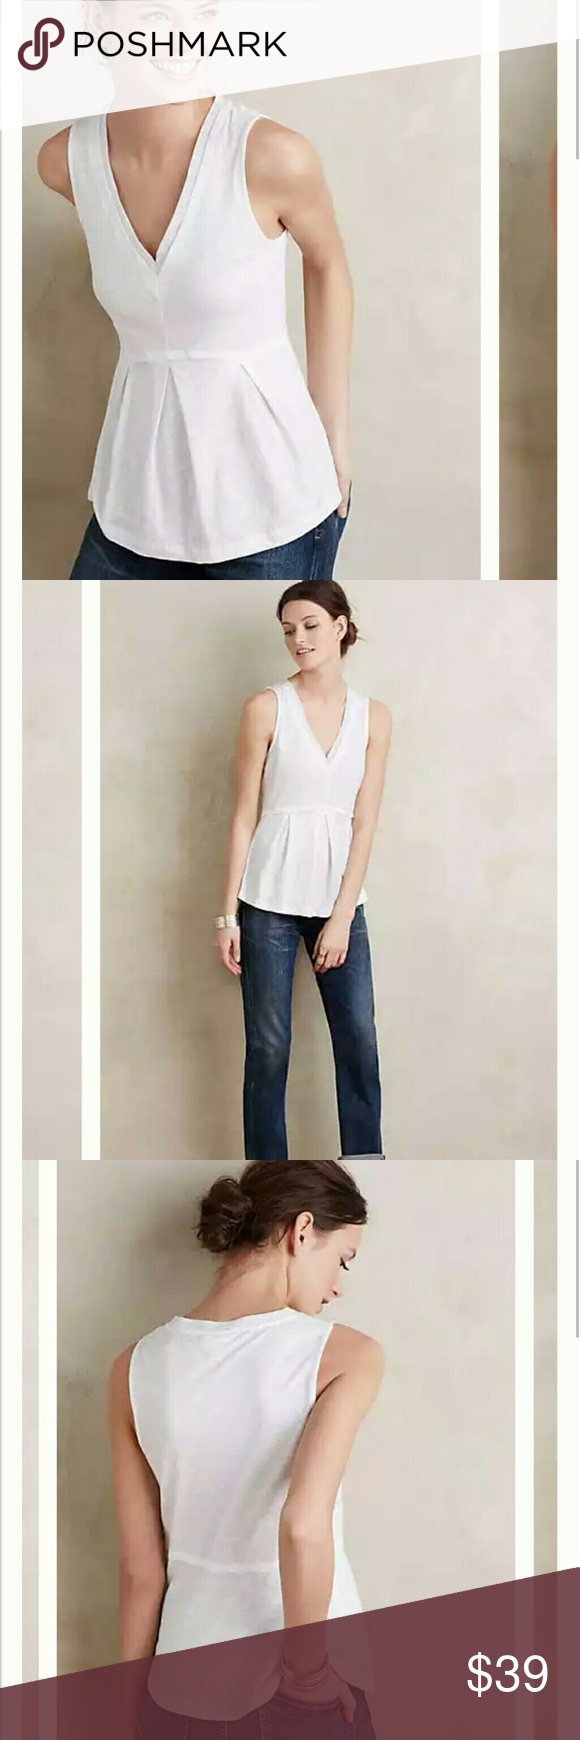 "Amalia Peplum Tank By Deletta for Anthropologie   Cotton Pullover styling  Dimensions: Regular: 26""L Petite: 24.25""L Anthropologie Tops"